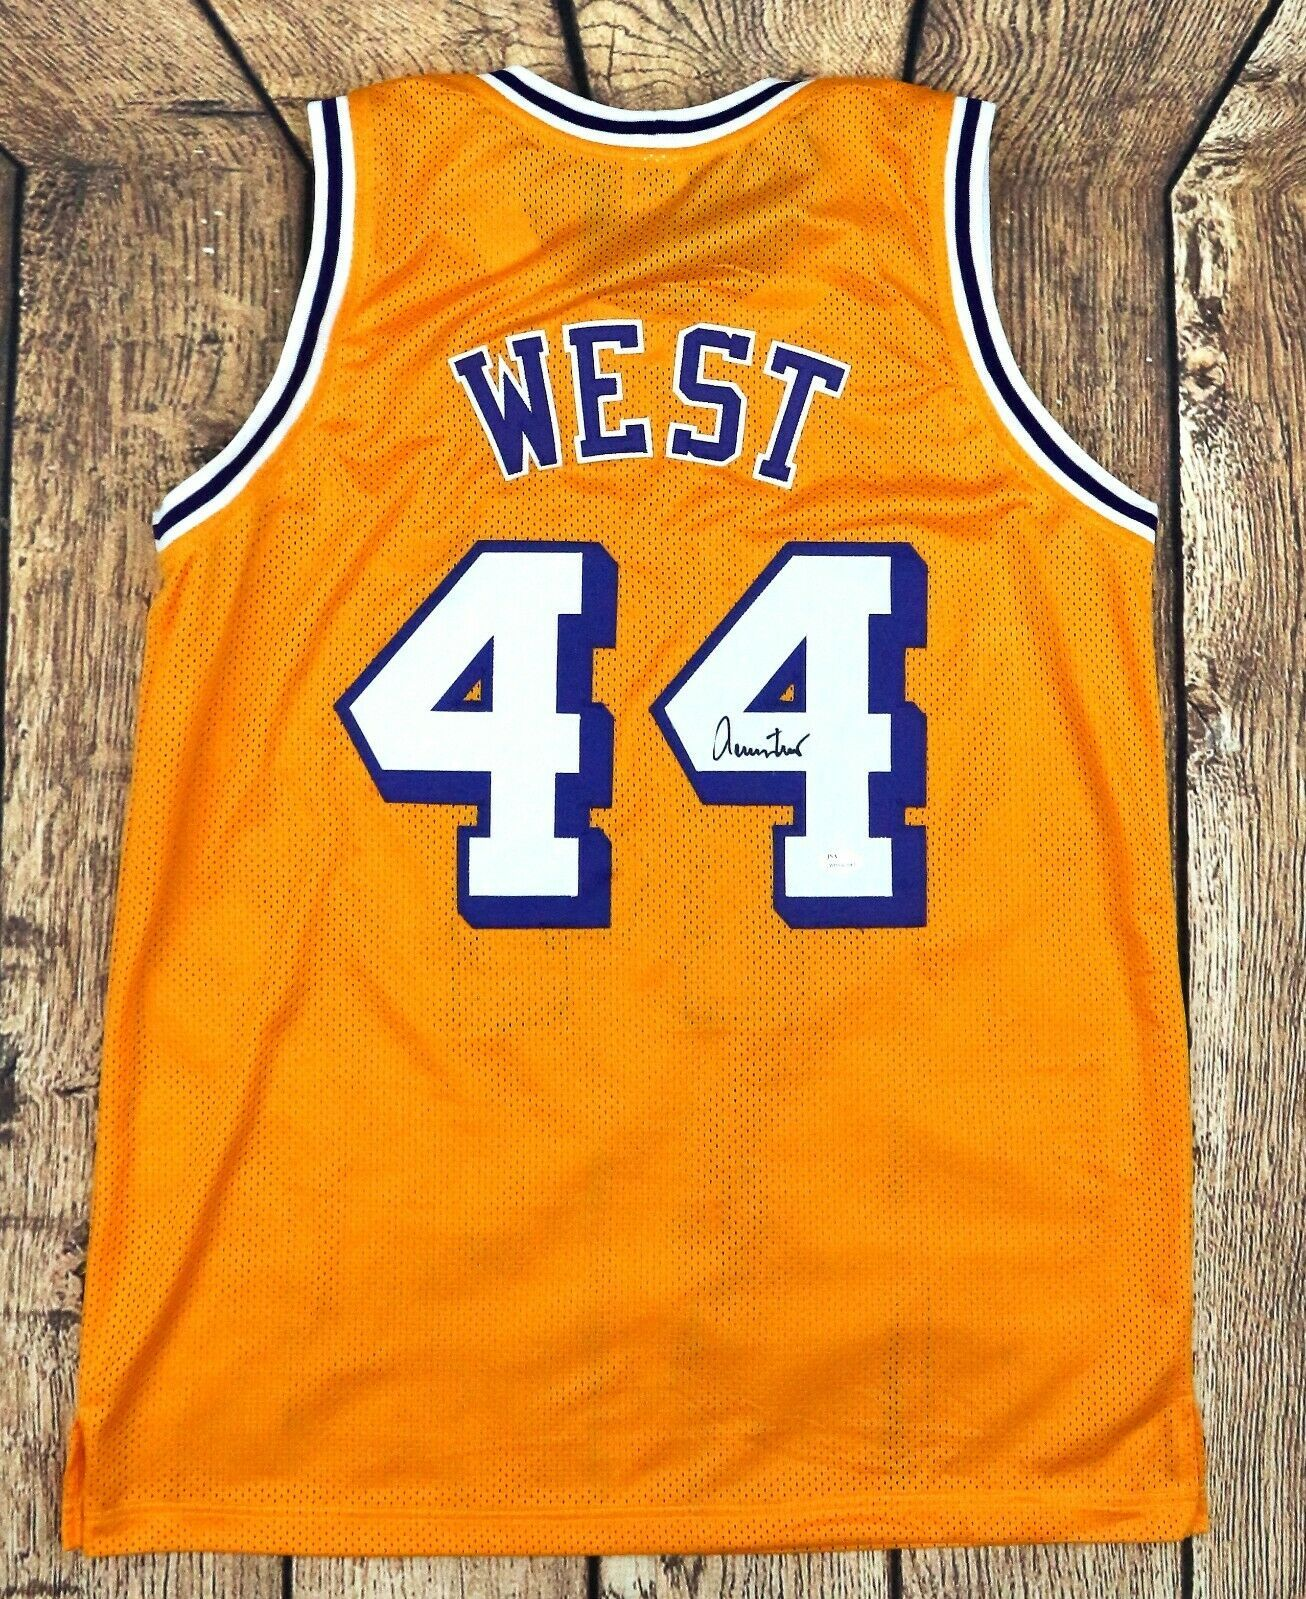 JERRY WEST AUTOGRAPHED PRO STYLE YELLOW JERSEY JSA AUTHENTICATED